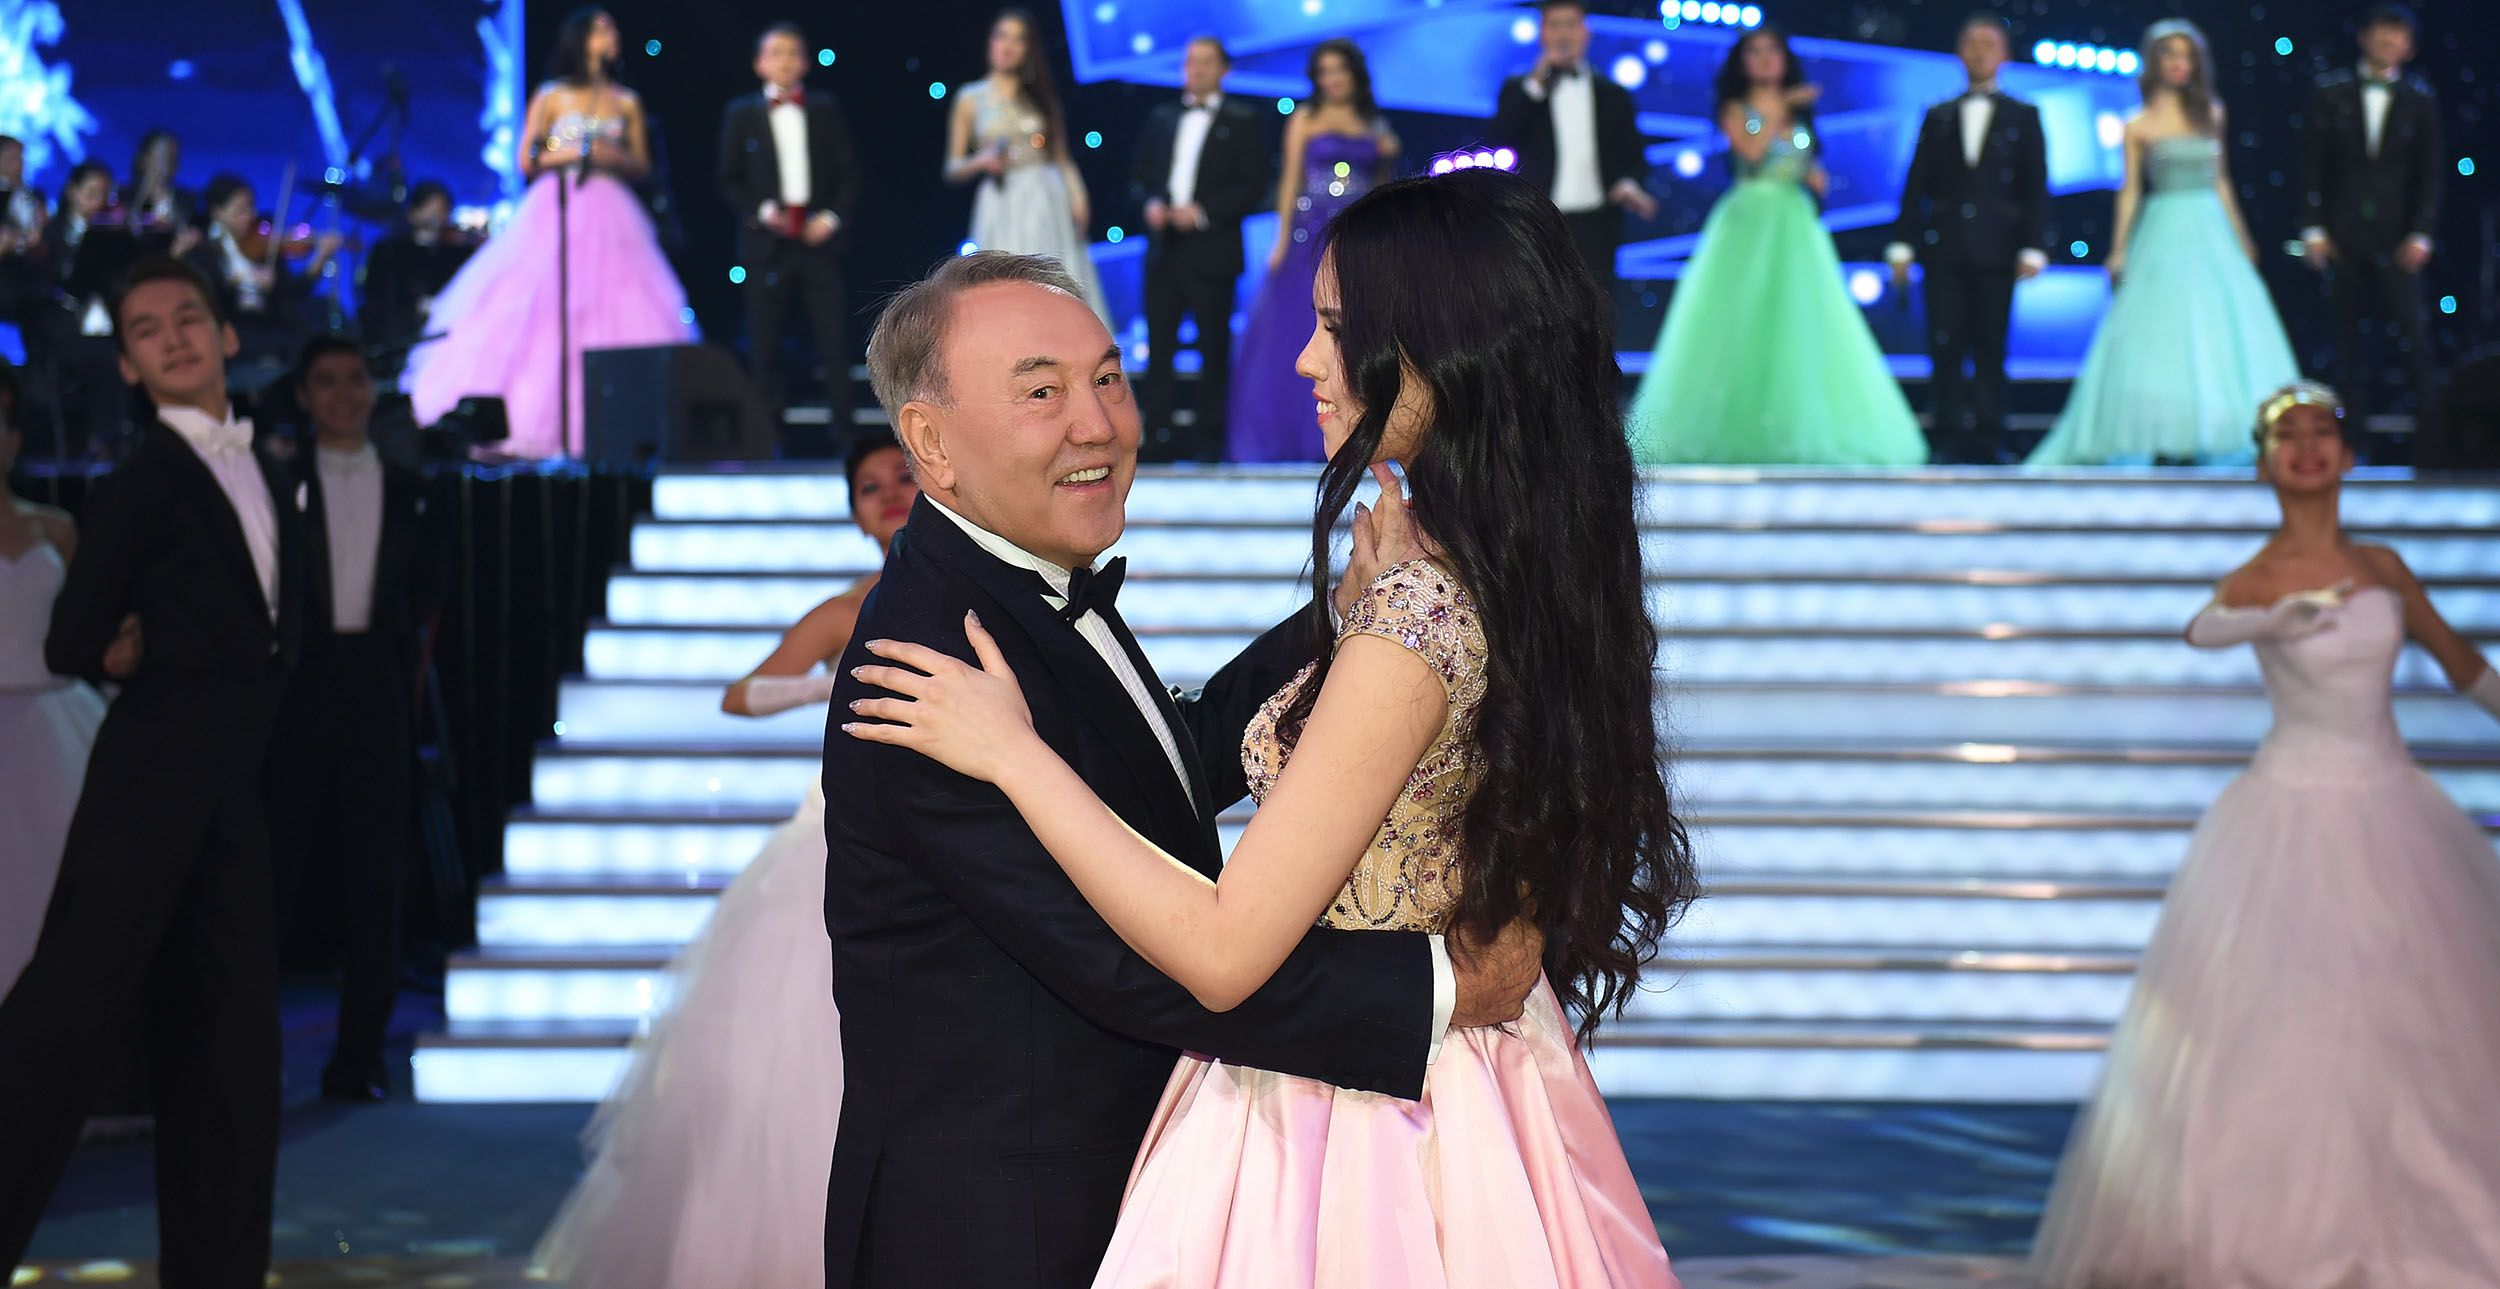 President of Kazakhstan Nursultan Nazarbayev attended the New Year s Eve  Ball held at the Duman Entertainment Center on December 29, the press  service of ... e8d281b3f7b